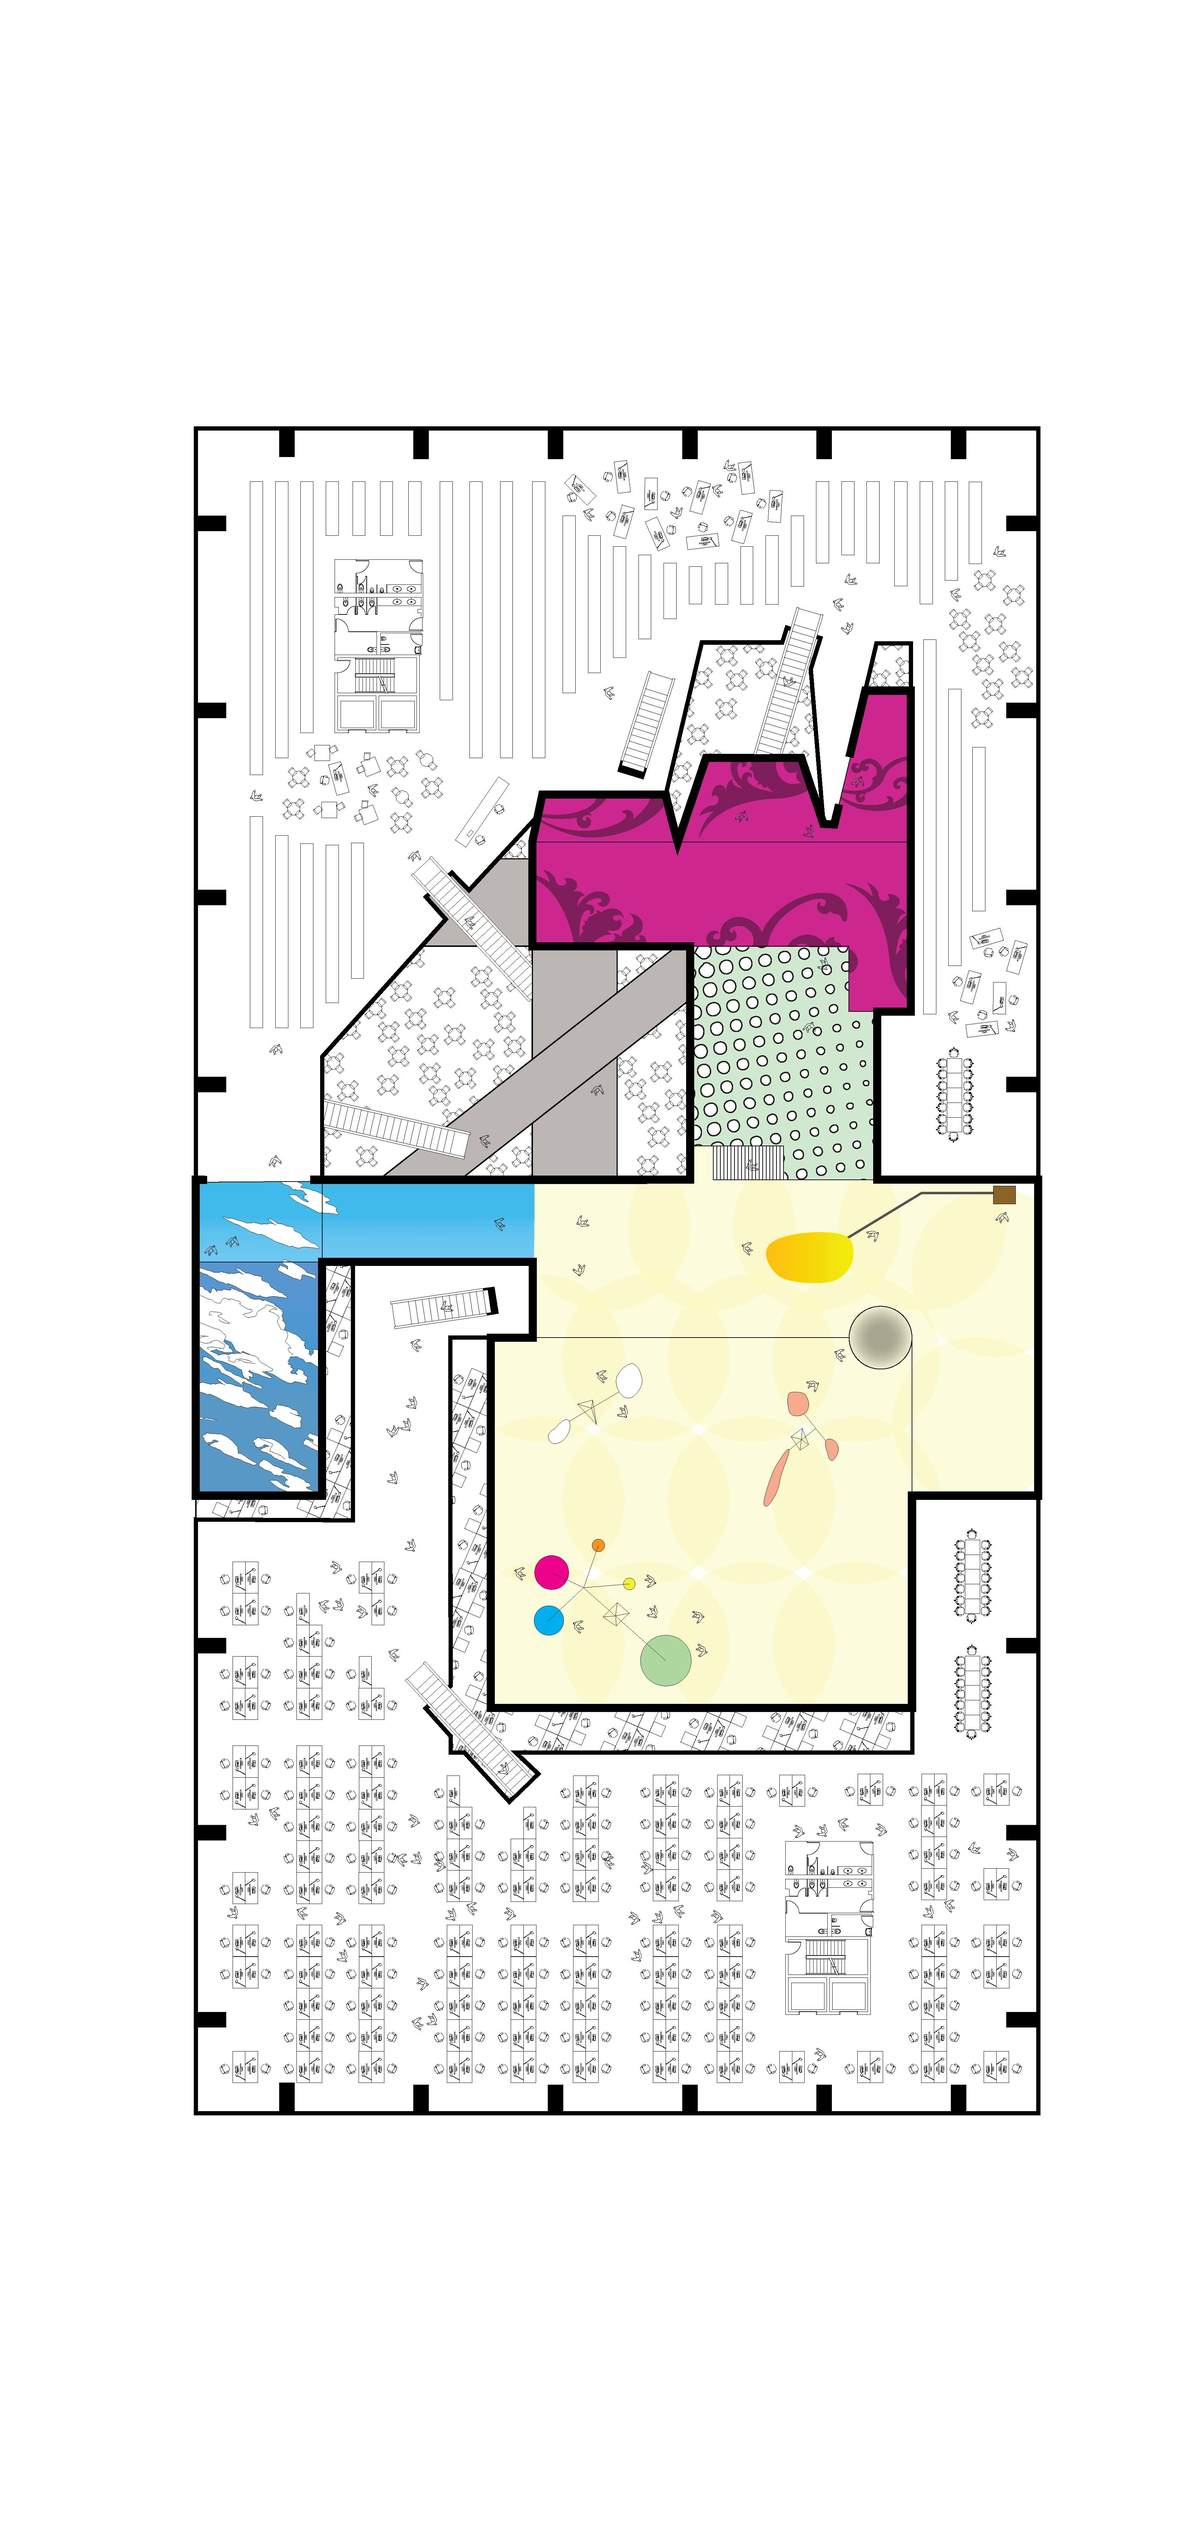 Interior City Typical Plan